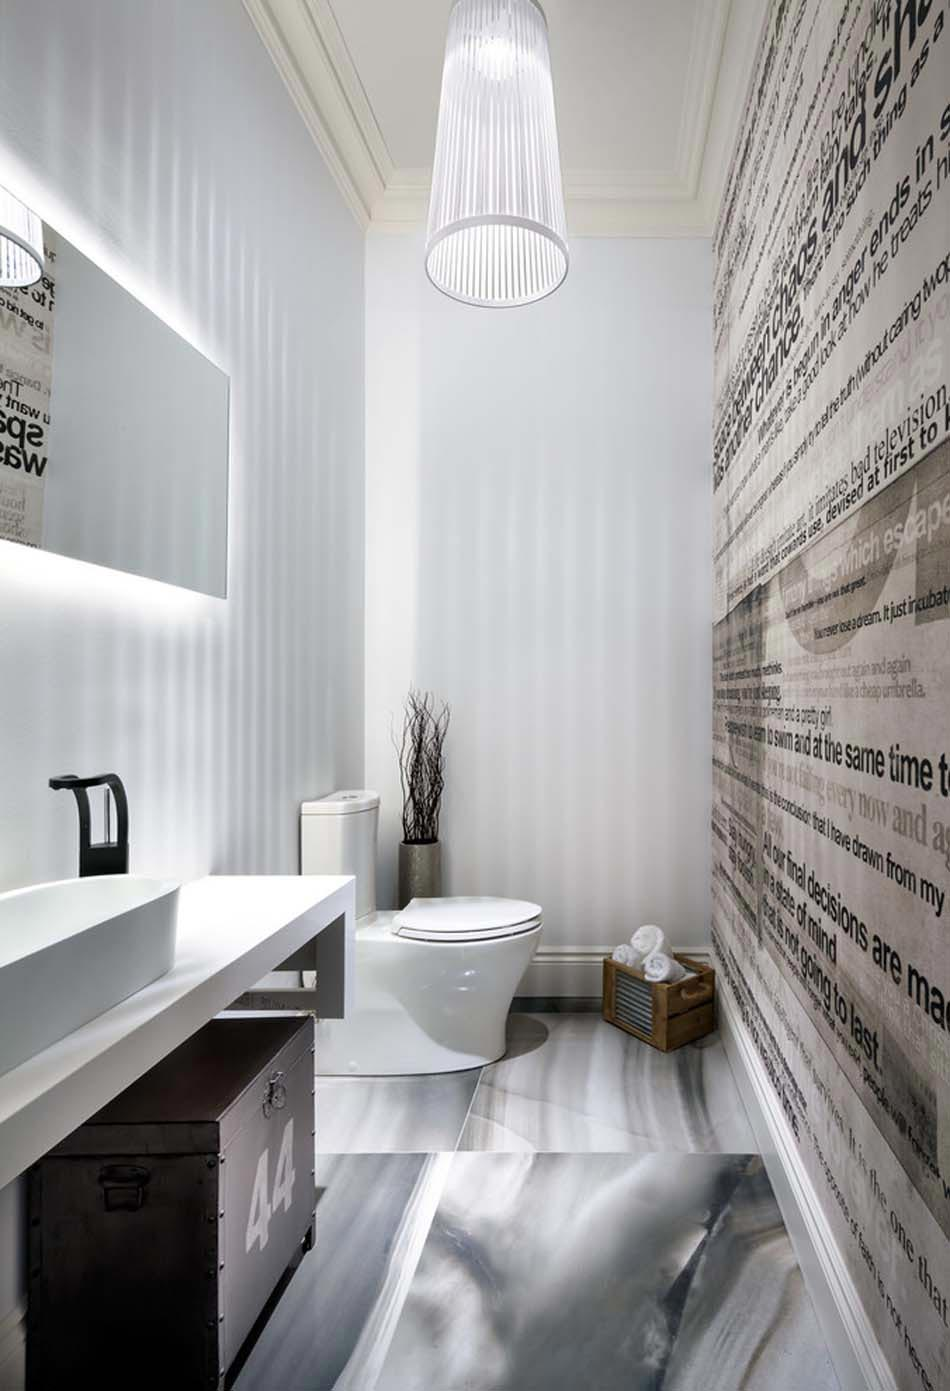 Deco originale wc meilleures images d 39 inspiration pour for Architecture originale